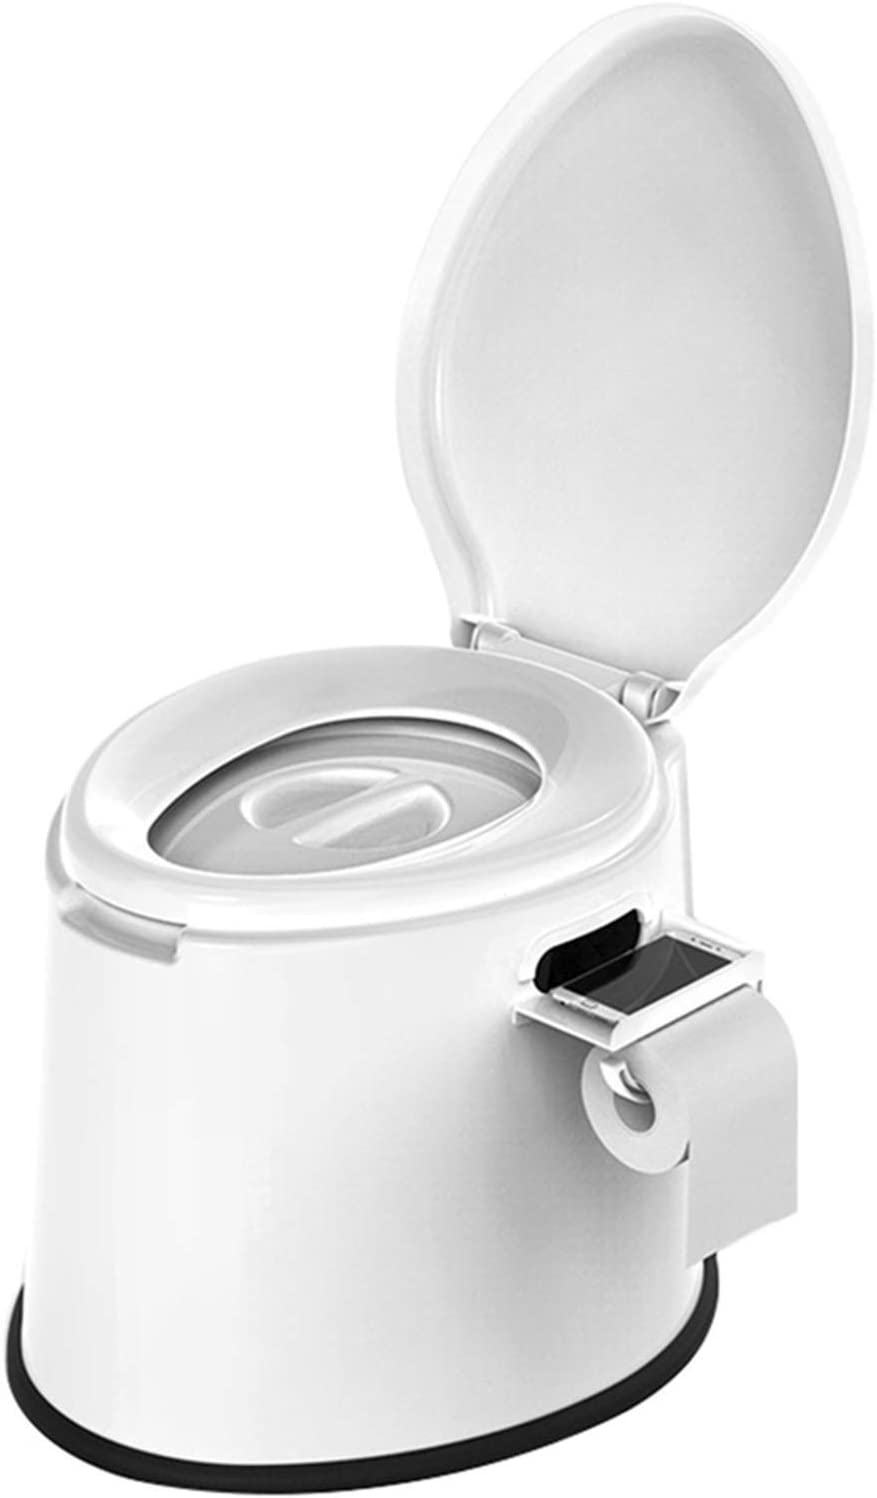 Outdoor Portable Toilet, Travel Mobile Commode, Compact Anti-Skid Camping Toilet, Home Mobile Widened Toilet seat